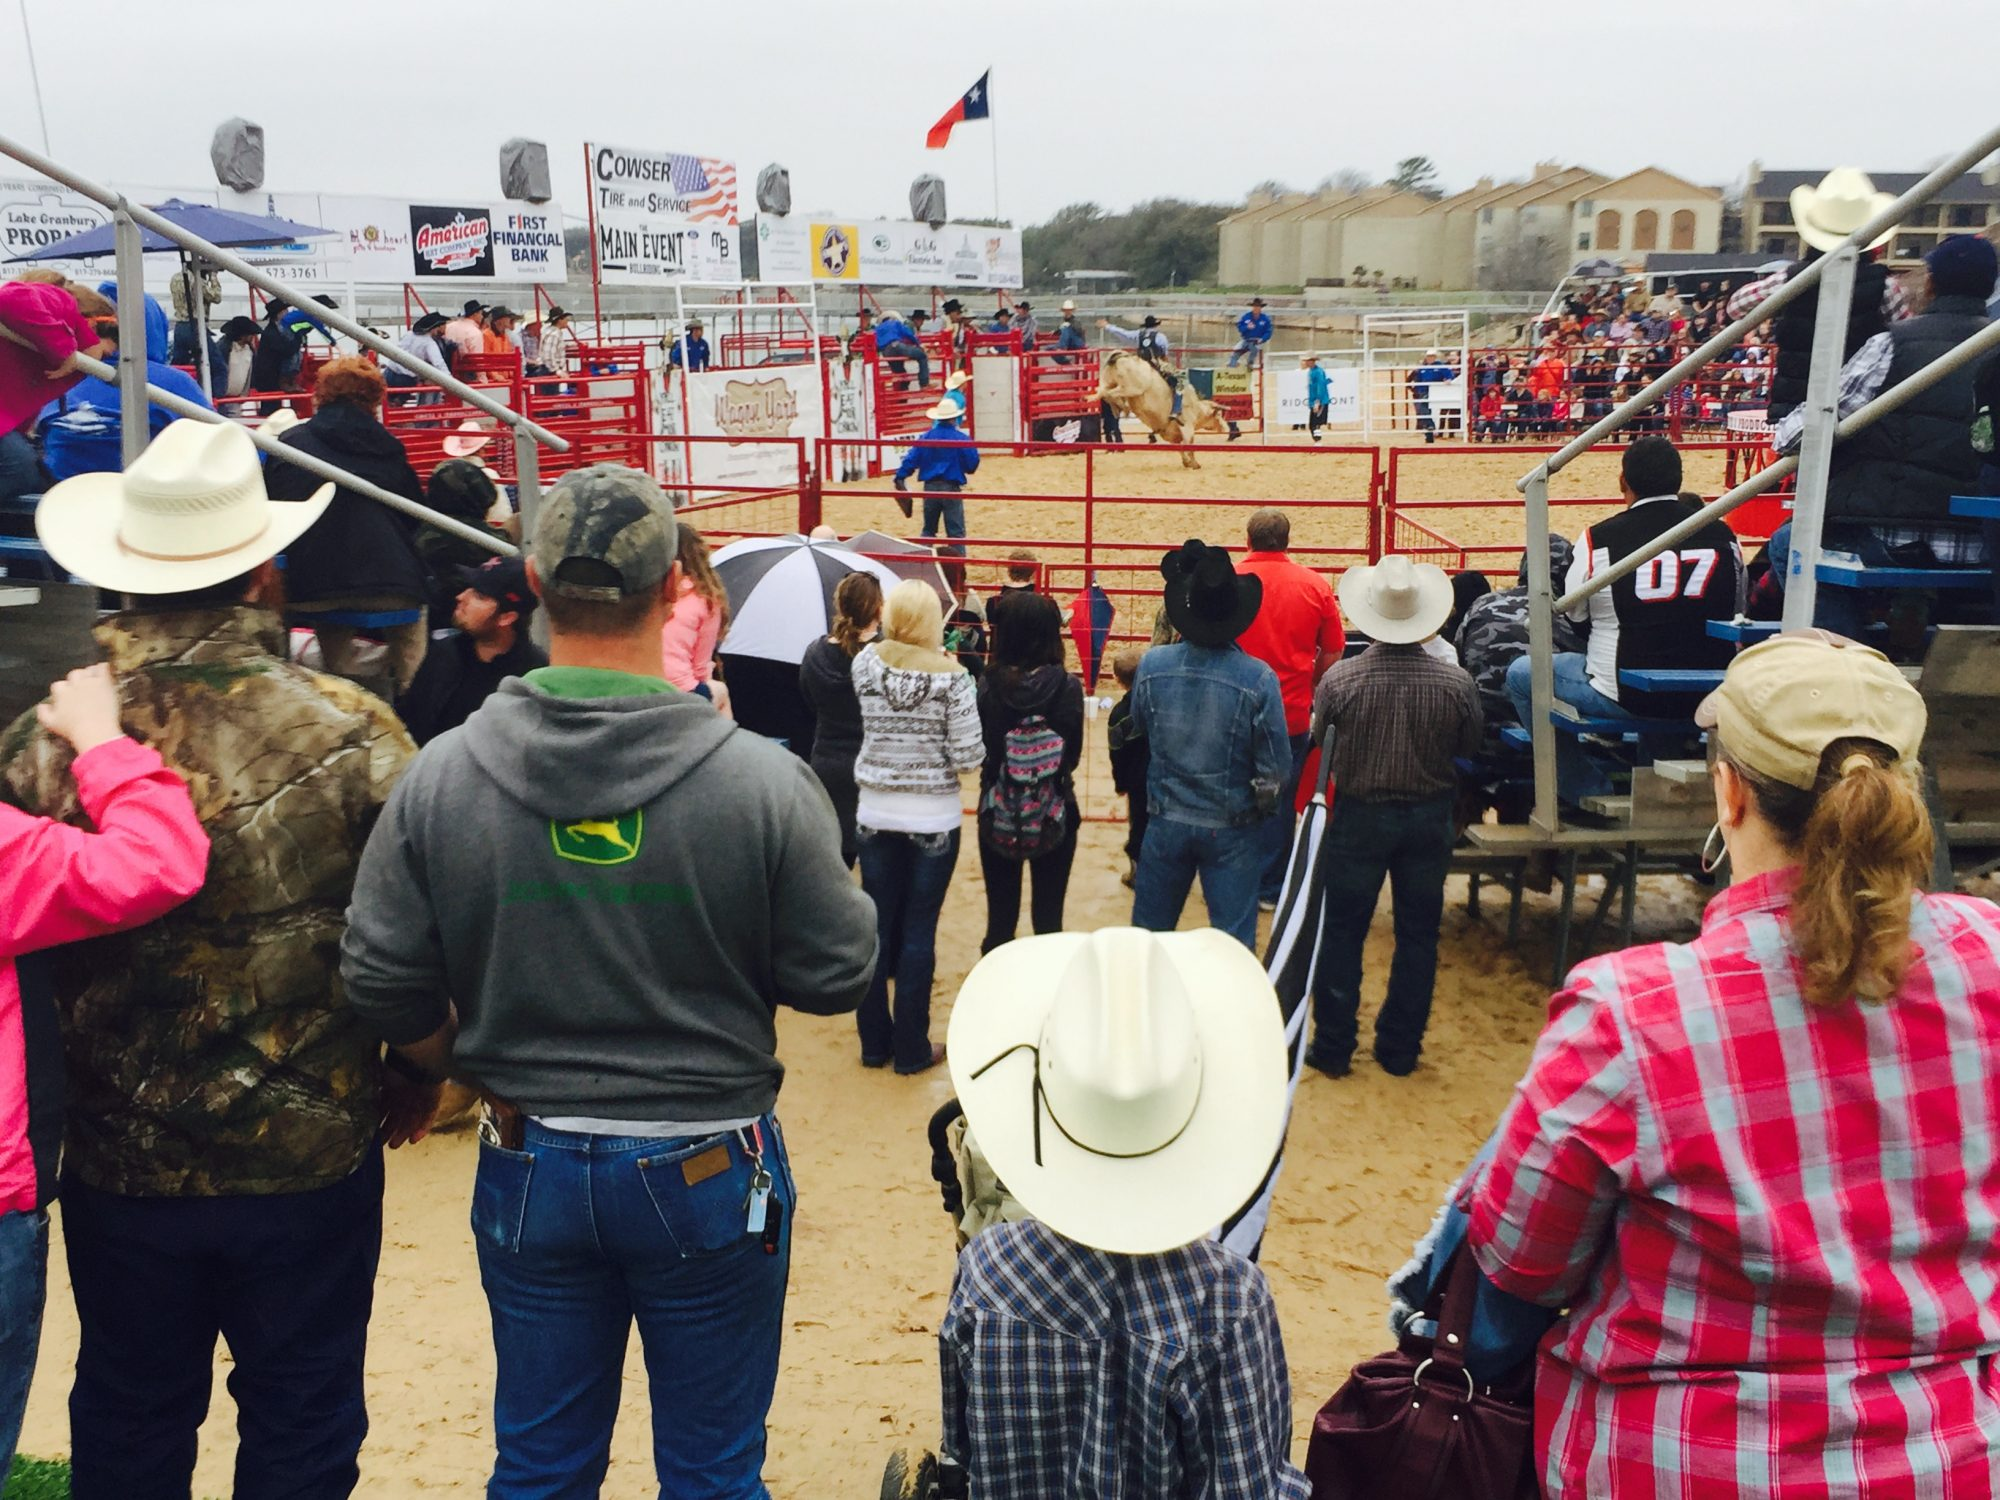 Crowd watching a cowboy ride a bull, Granbury, Texas.